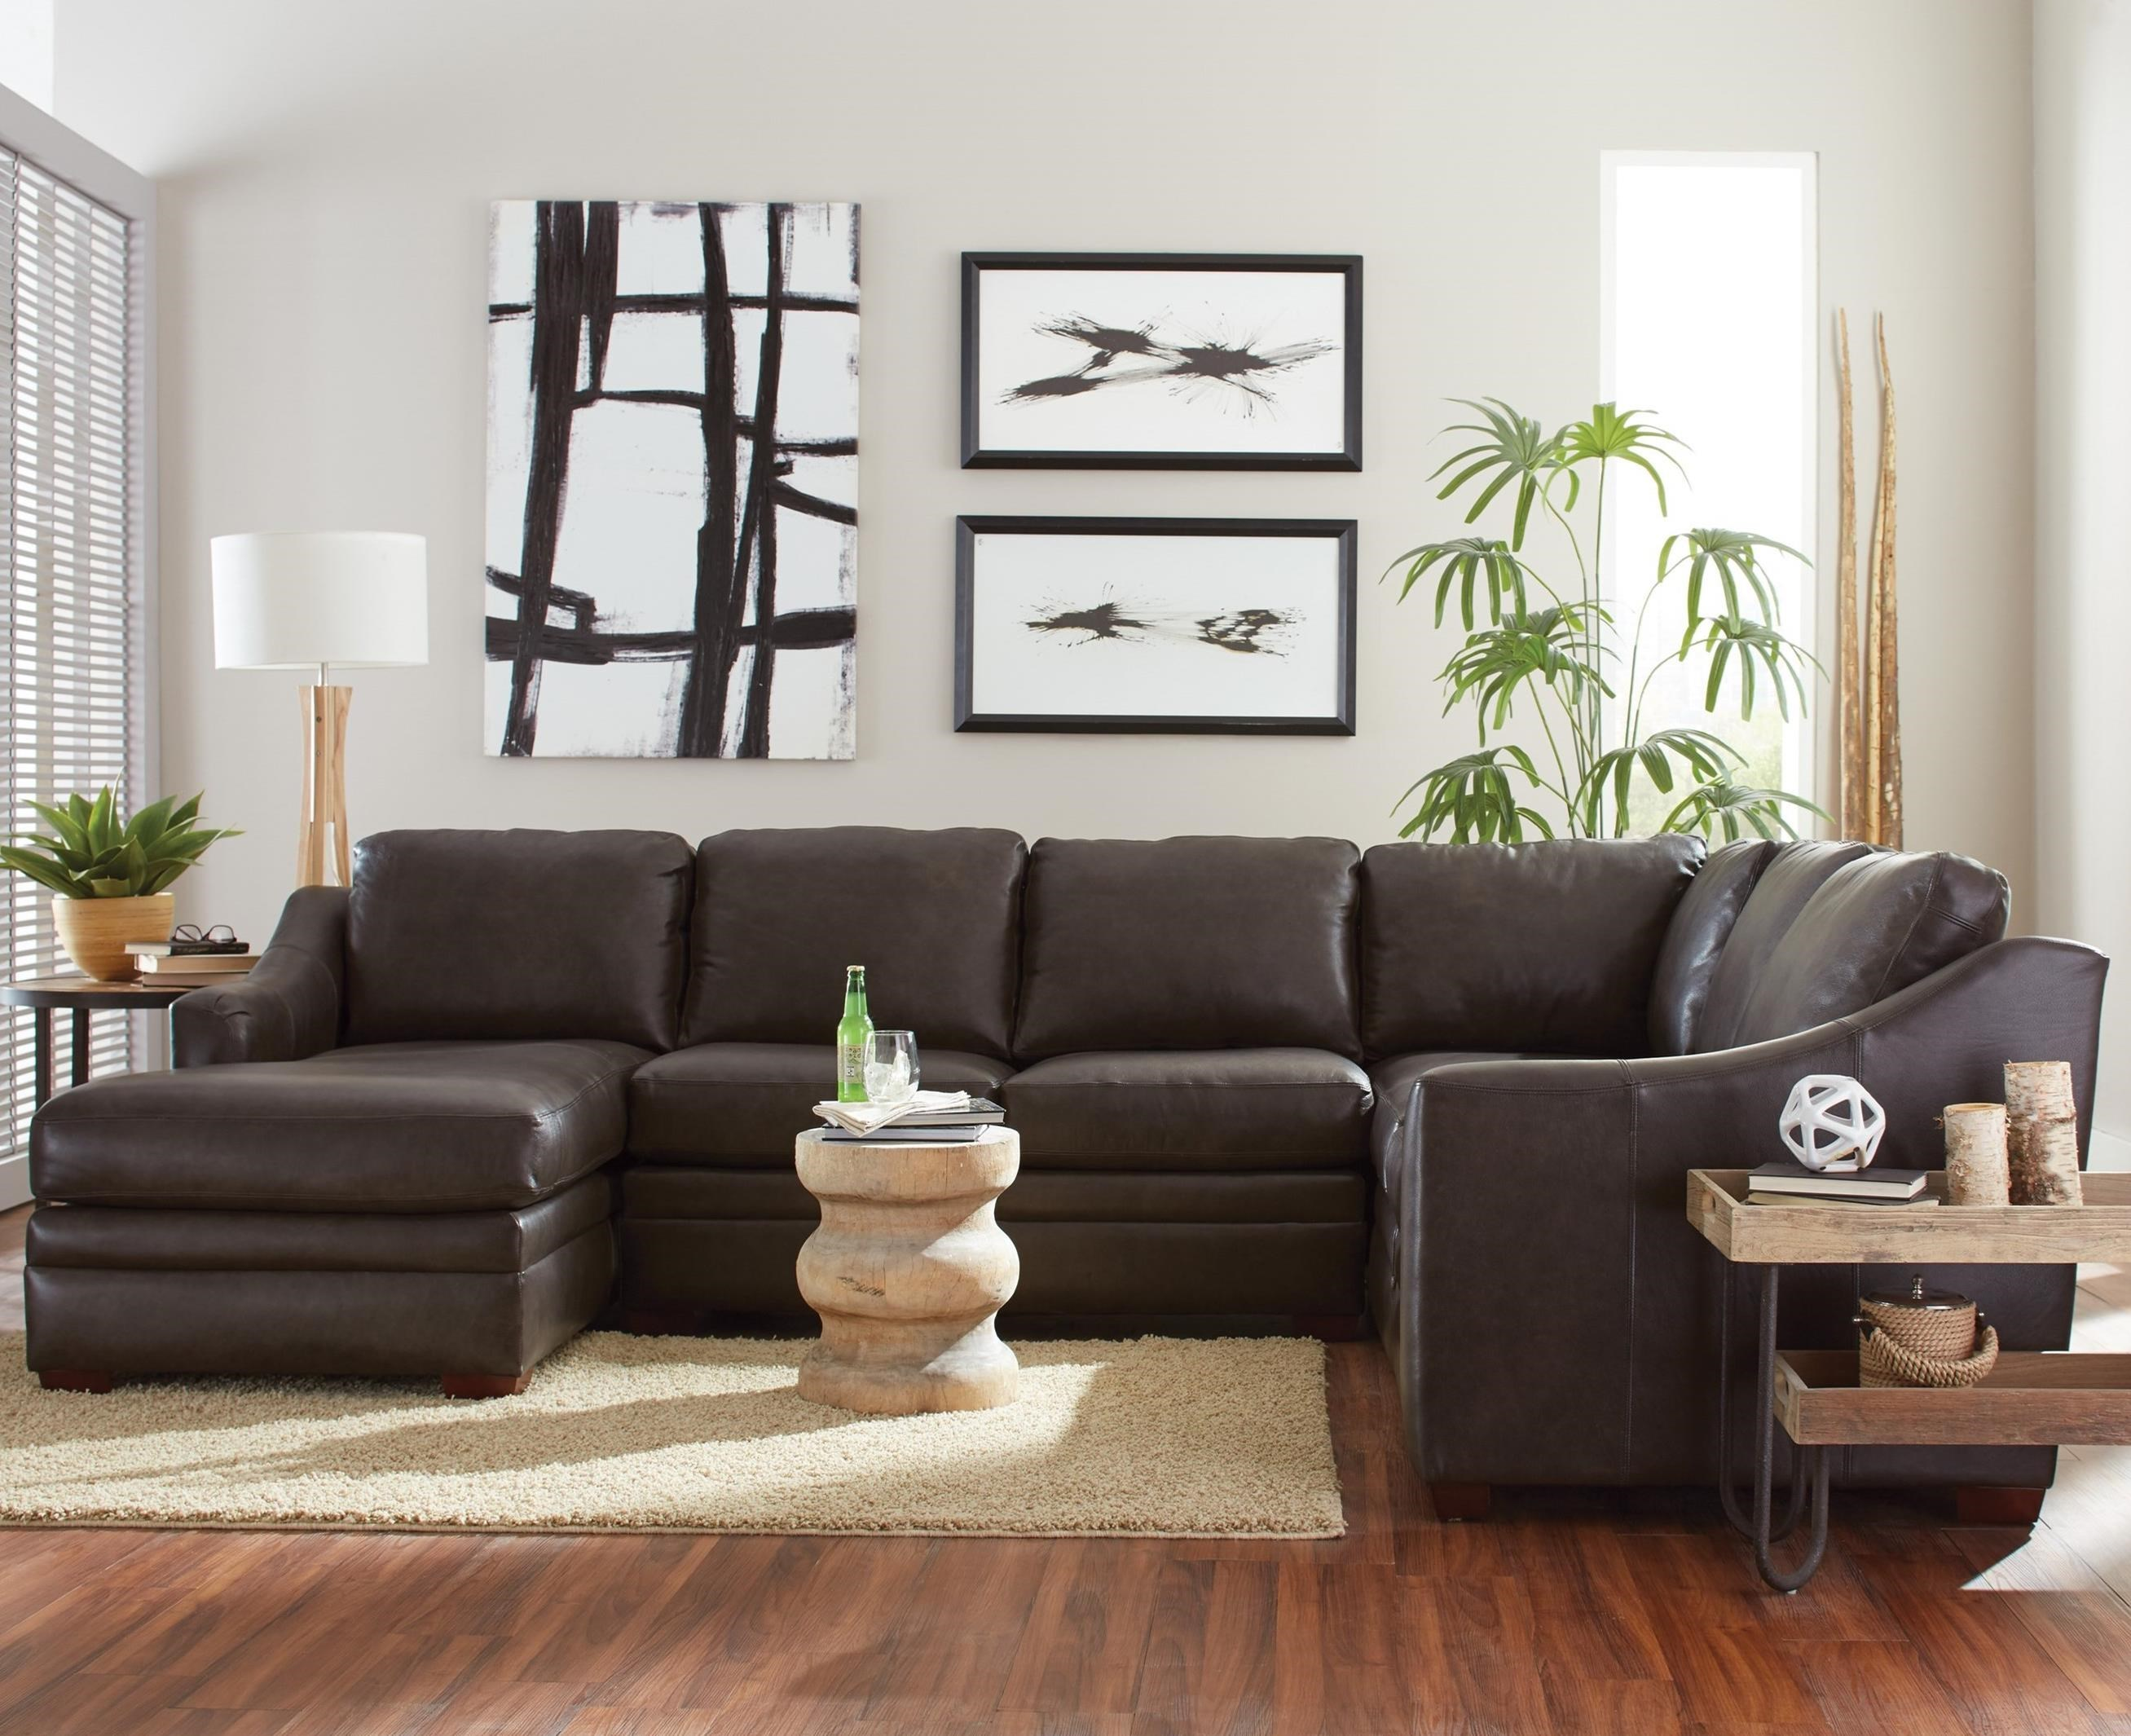 Hickorycraft L9 Custom   Design Options Customizable 3 Piece Leather  Sectional Sofa With 1 Power Recliner